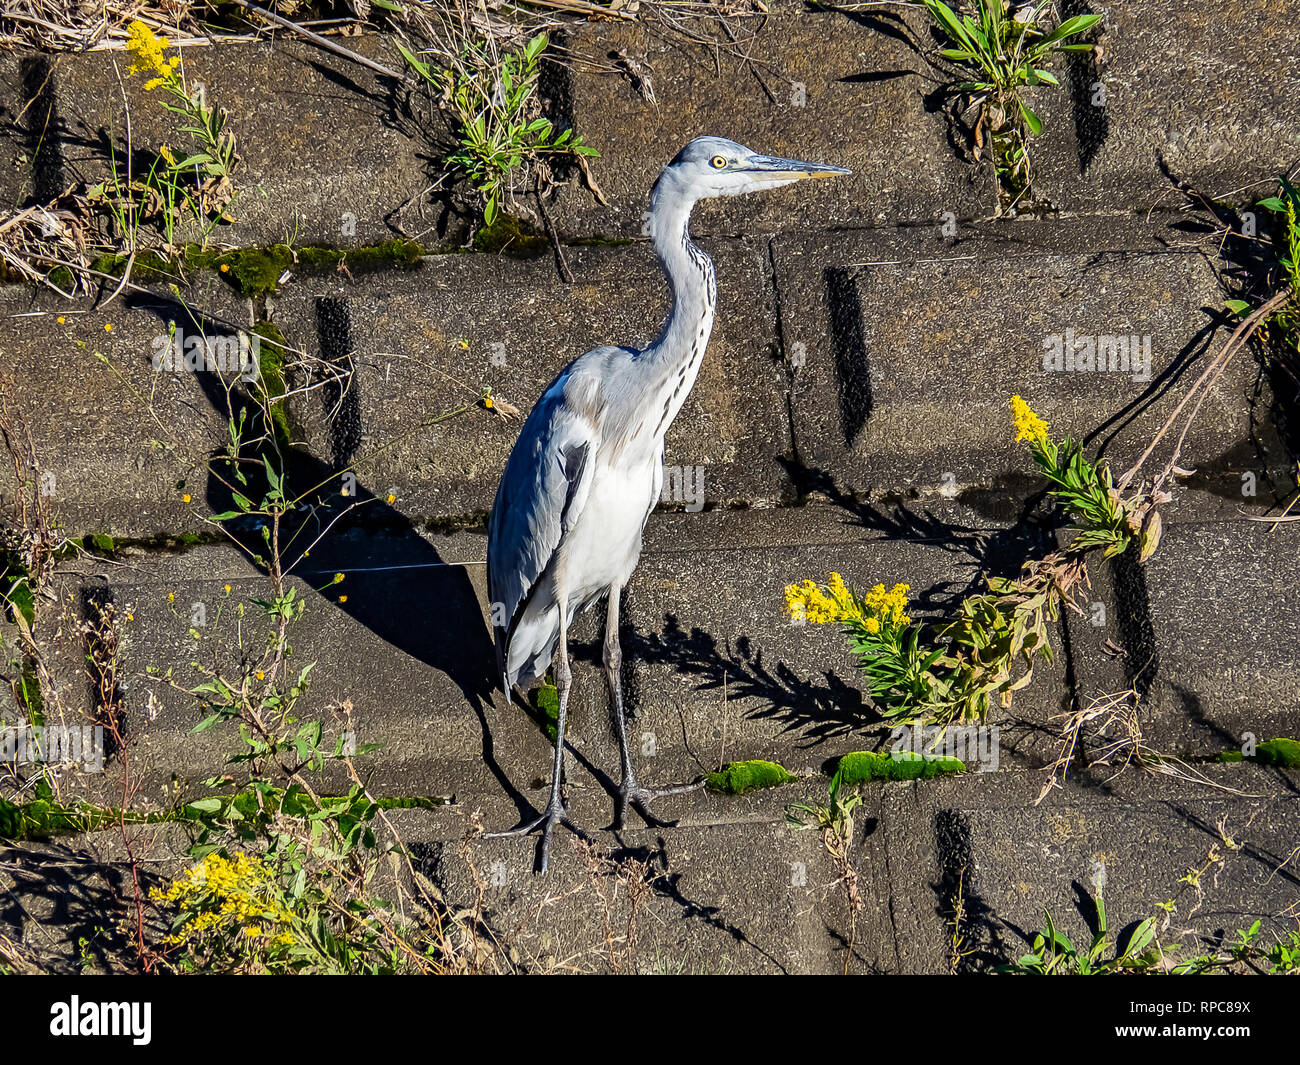 A gray heron stands on a concrete embankment beside a river in central Kanagawa prefecture, Japan. - Stock Image